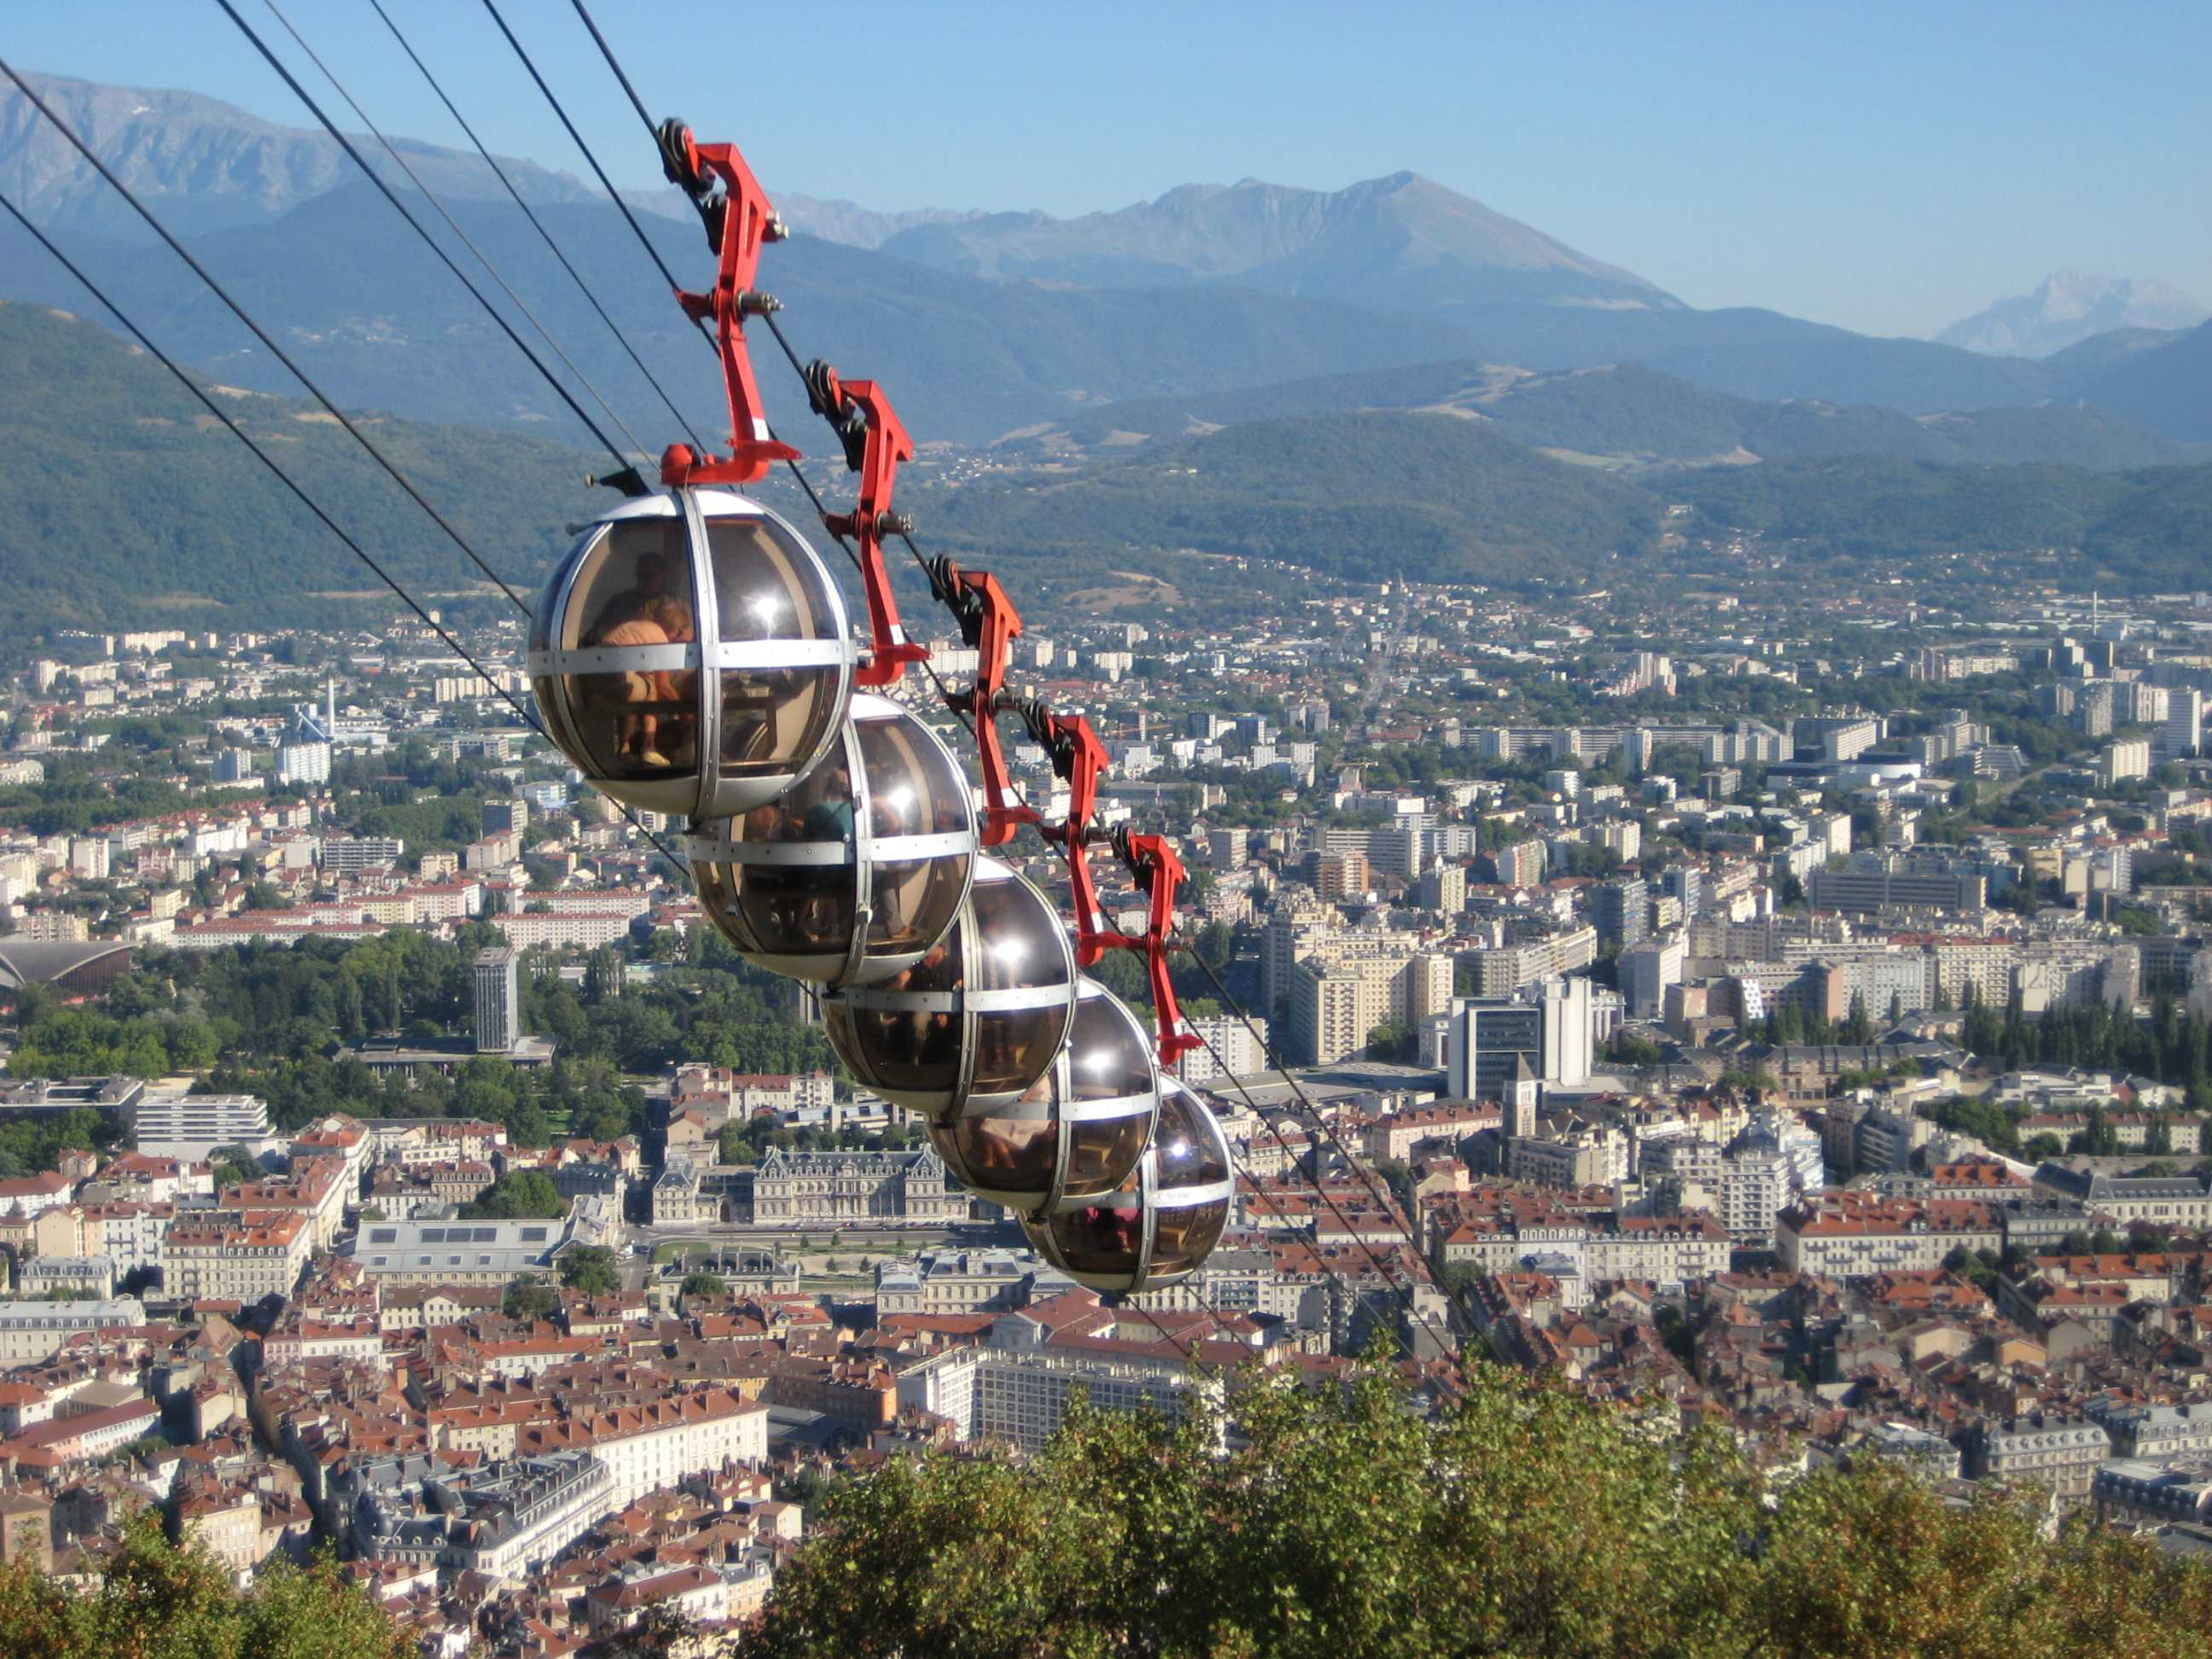 Teleferic of Grenoble